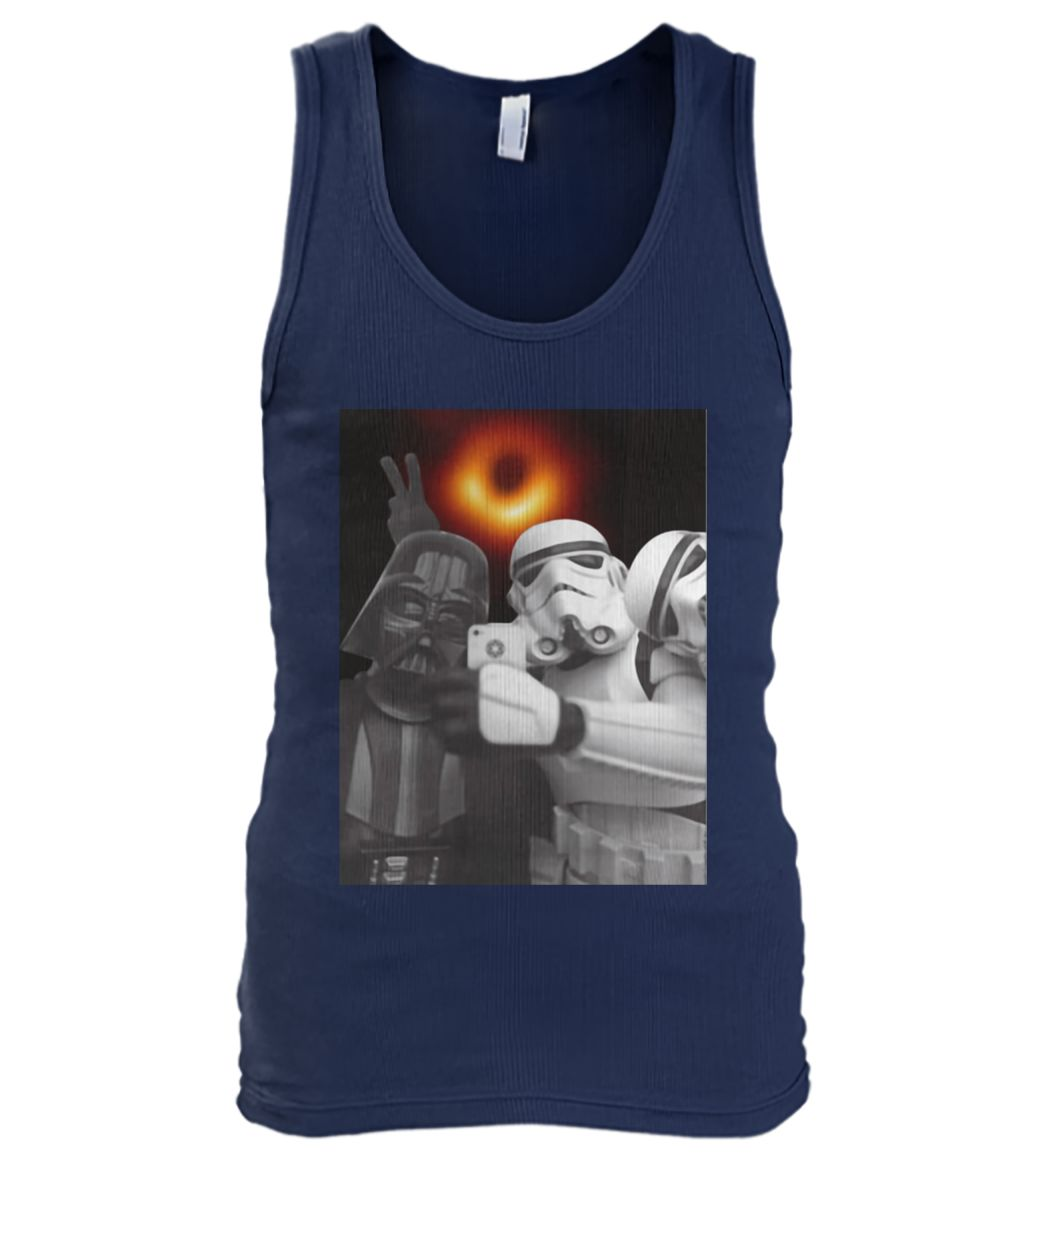 Darth vader and stormtroopers selfie with black hole 2019 men's tank top